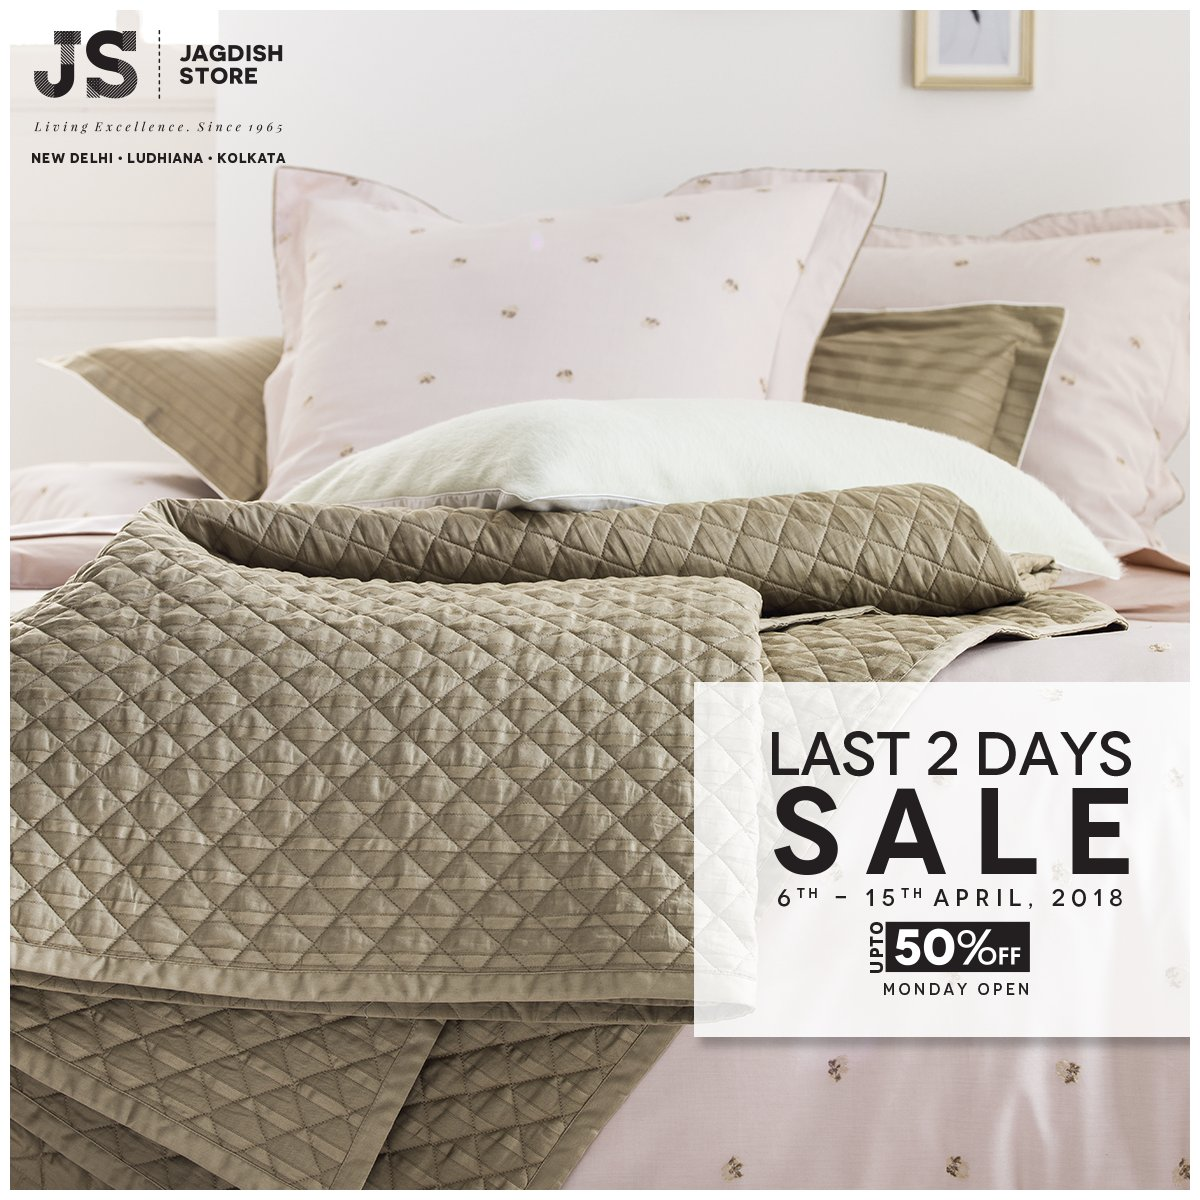 Jagdish Store On Twitter Only 2 Days Are Left Before The Sale At